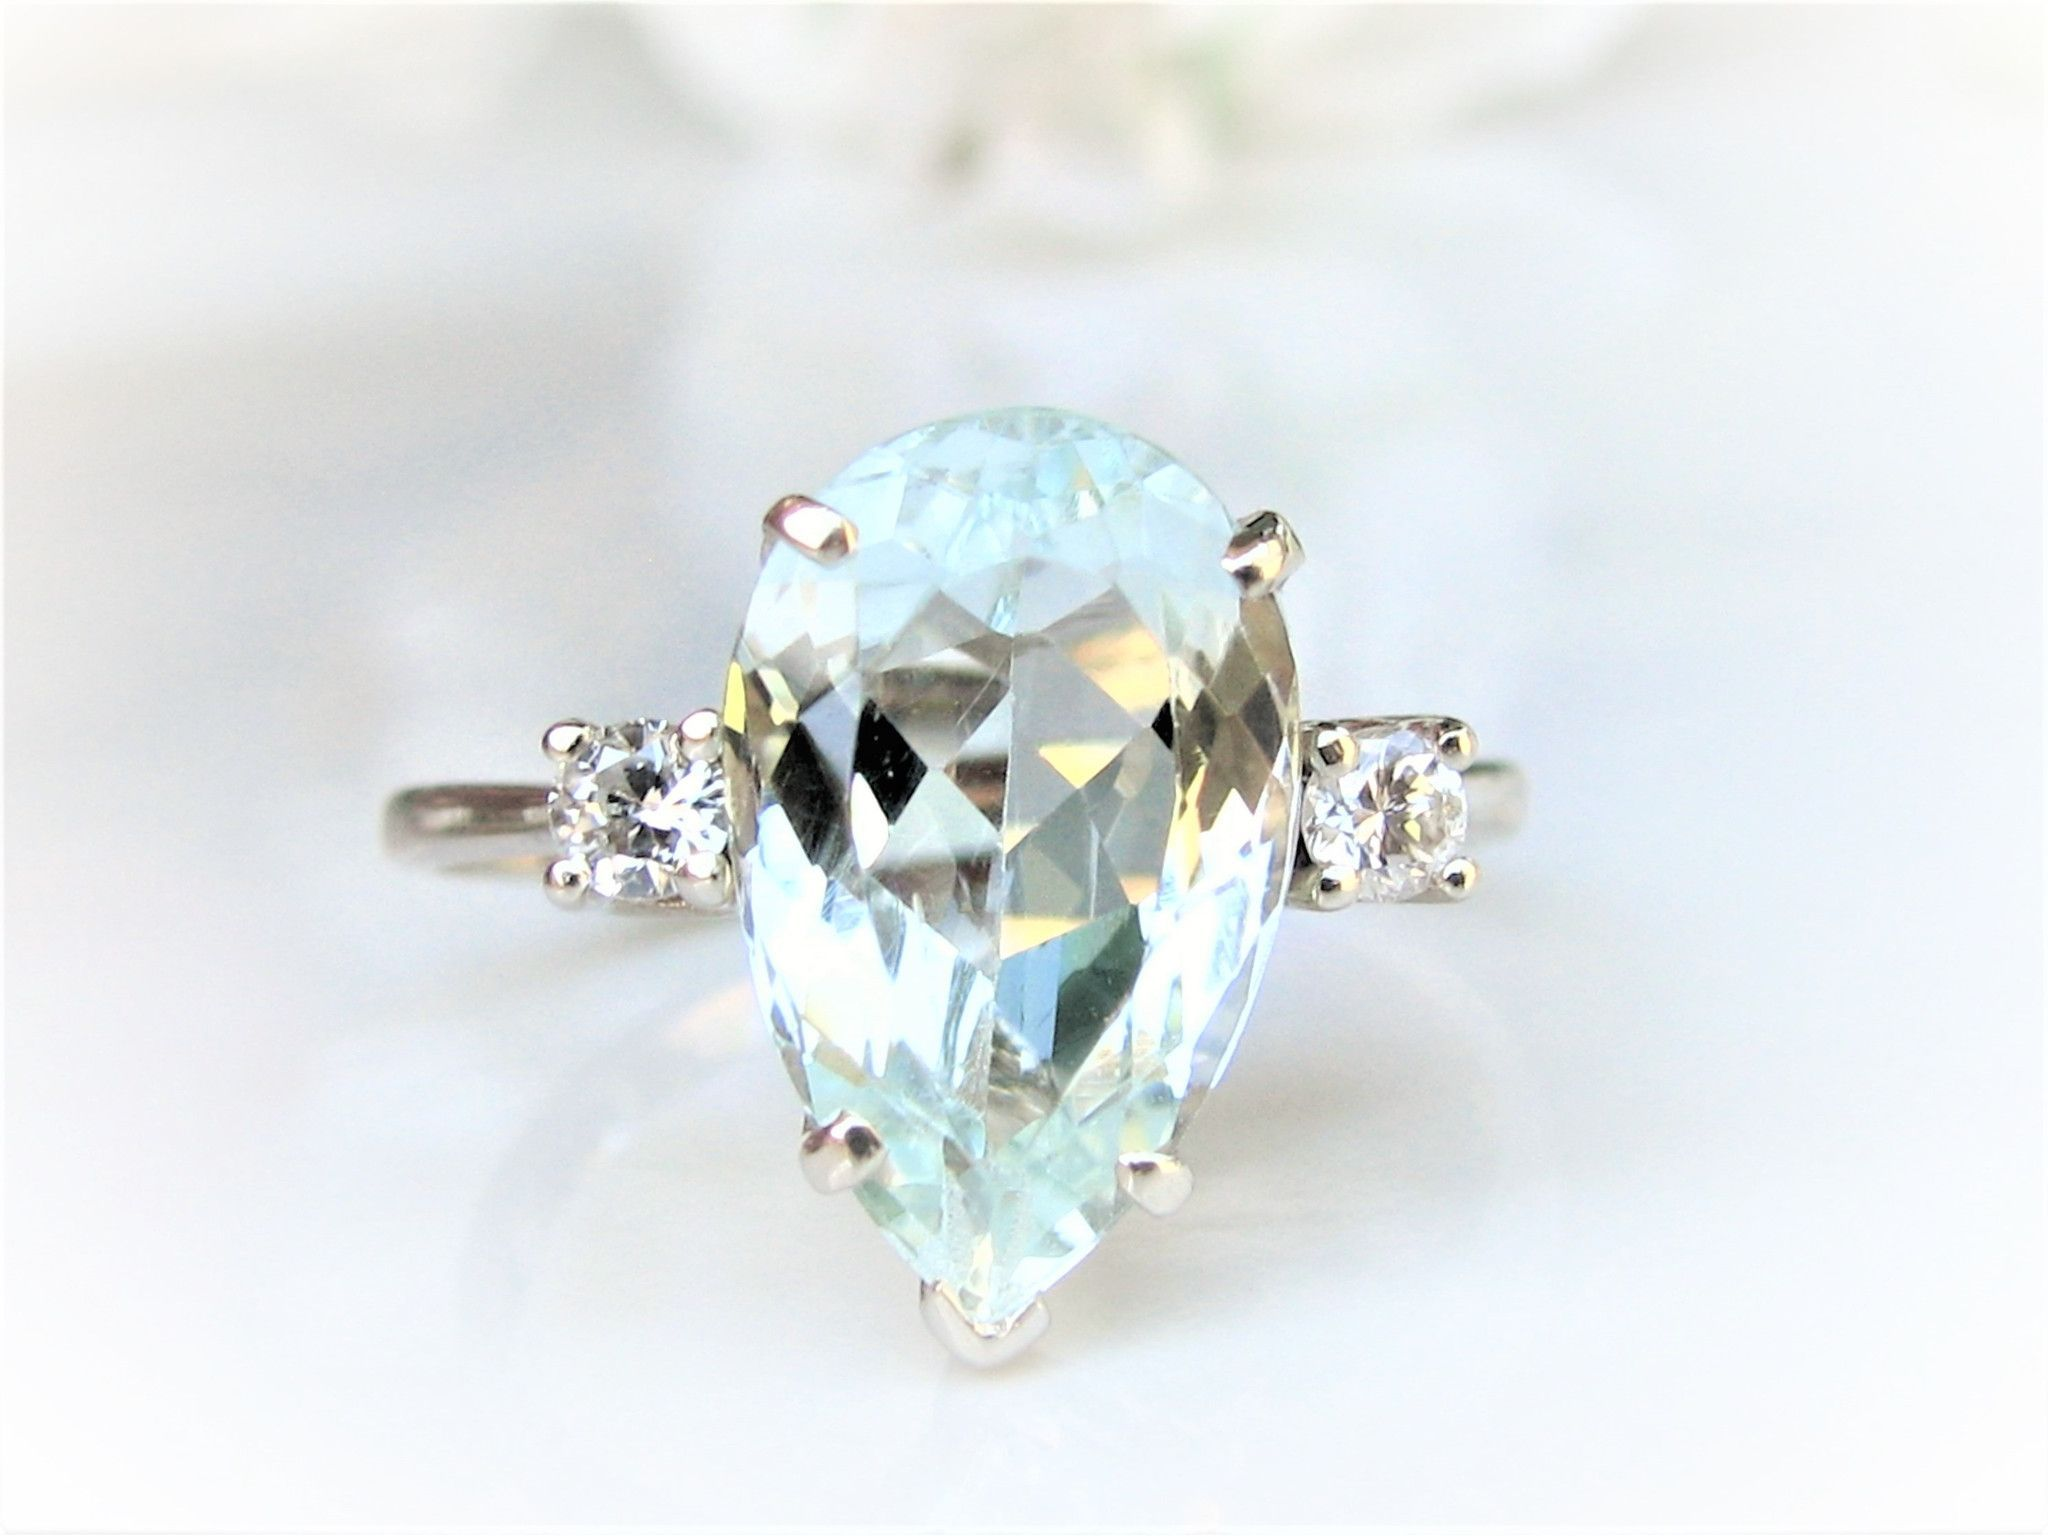 2.98CT Pear Shape Diamond Engagement and Wedding Ring Set 14K White Gold Over